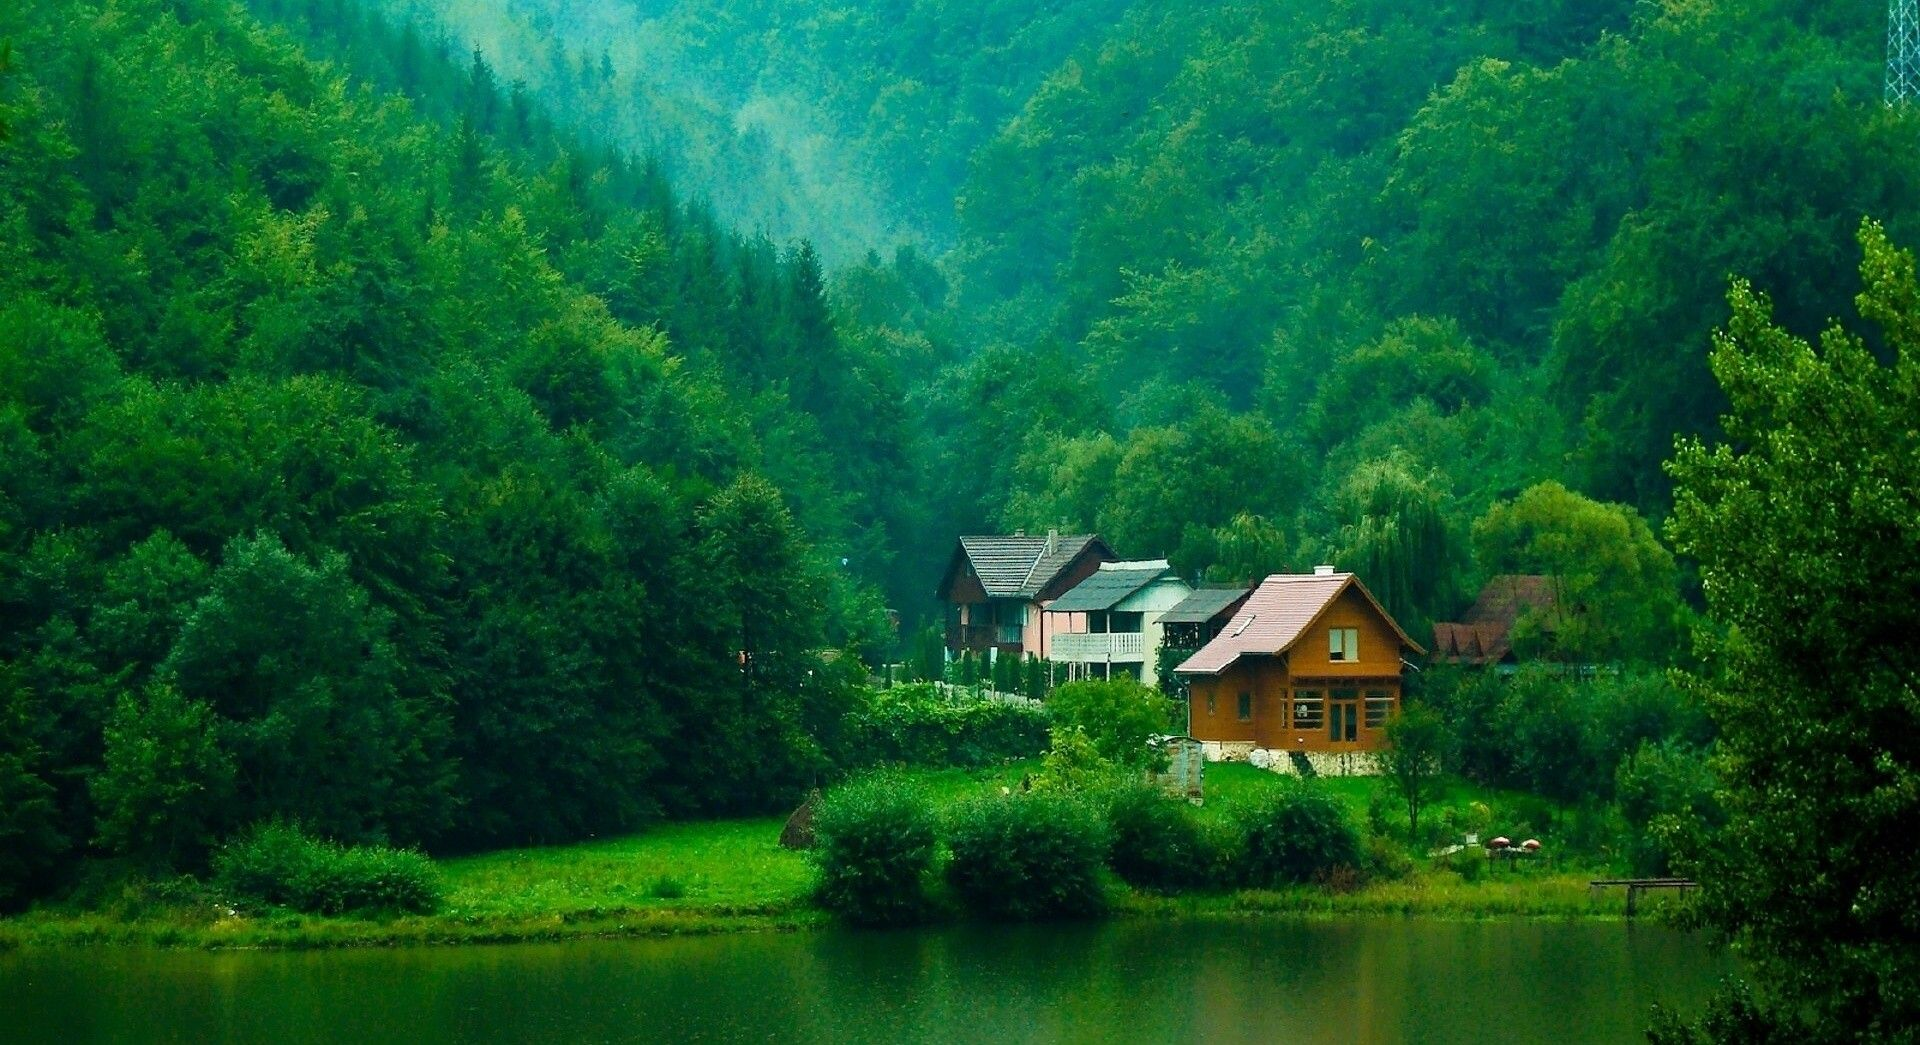 Hd wallpaper river - Beautiful Mountains River House Trees Simple Mountain Wallpaper For Mac